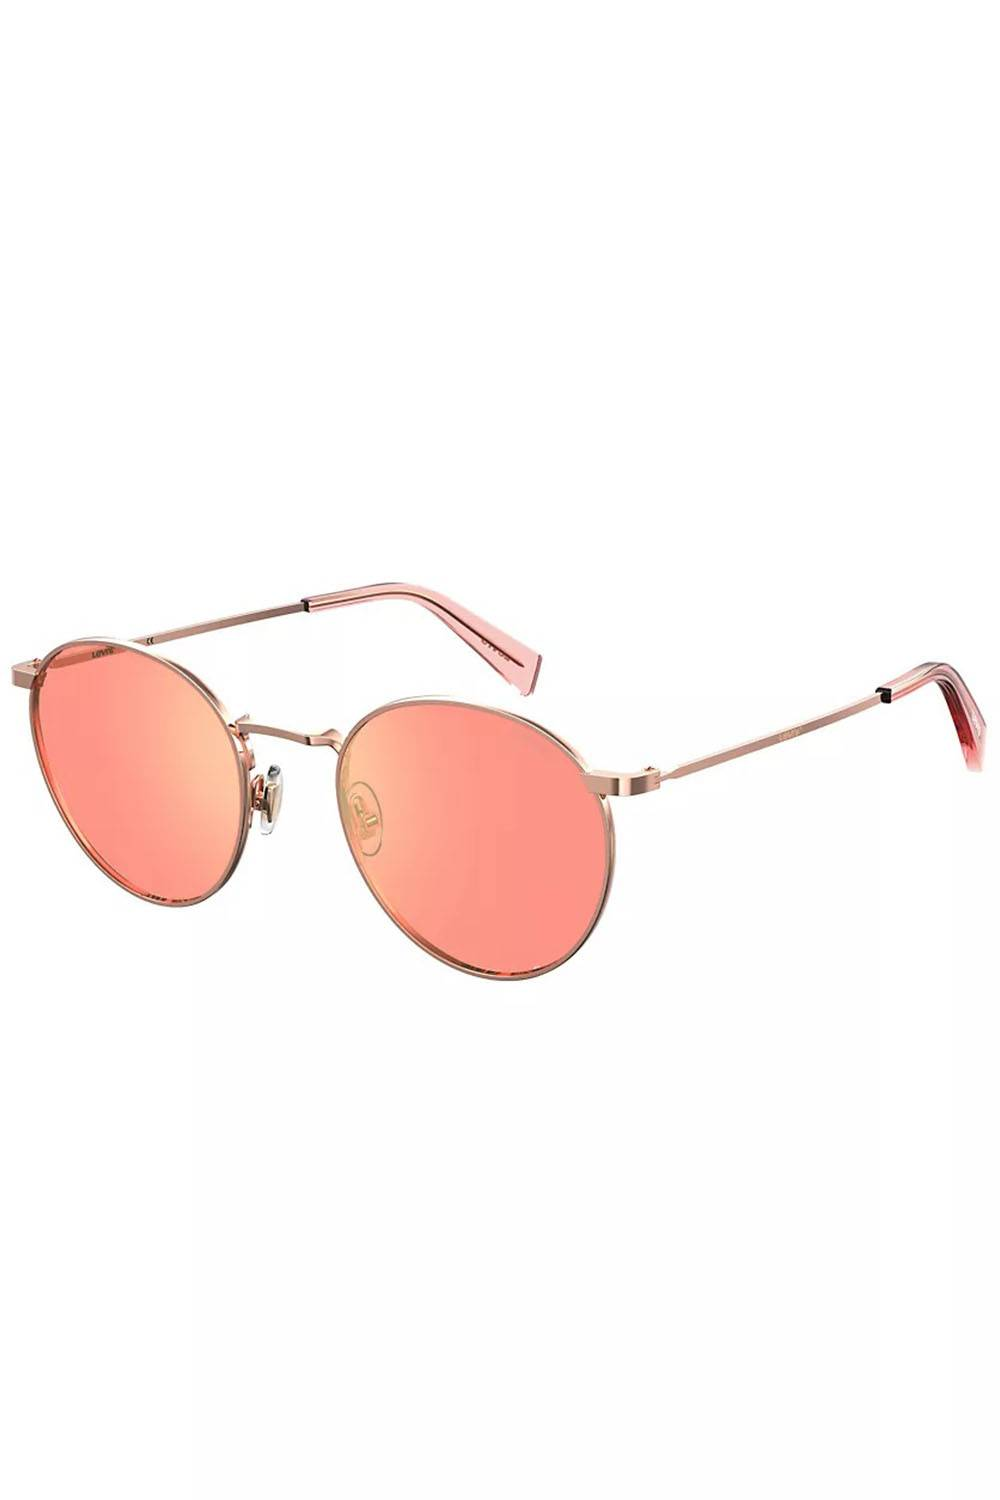 levis cheap ethically made sunglasses